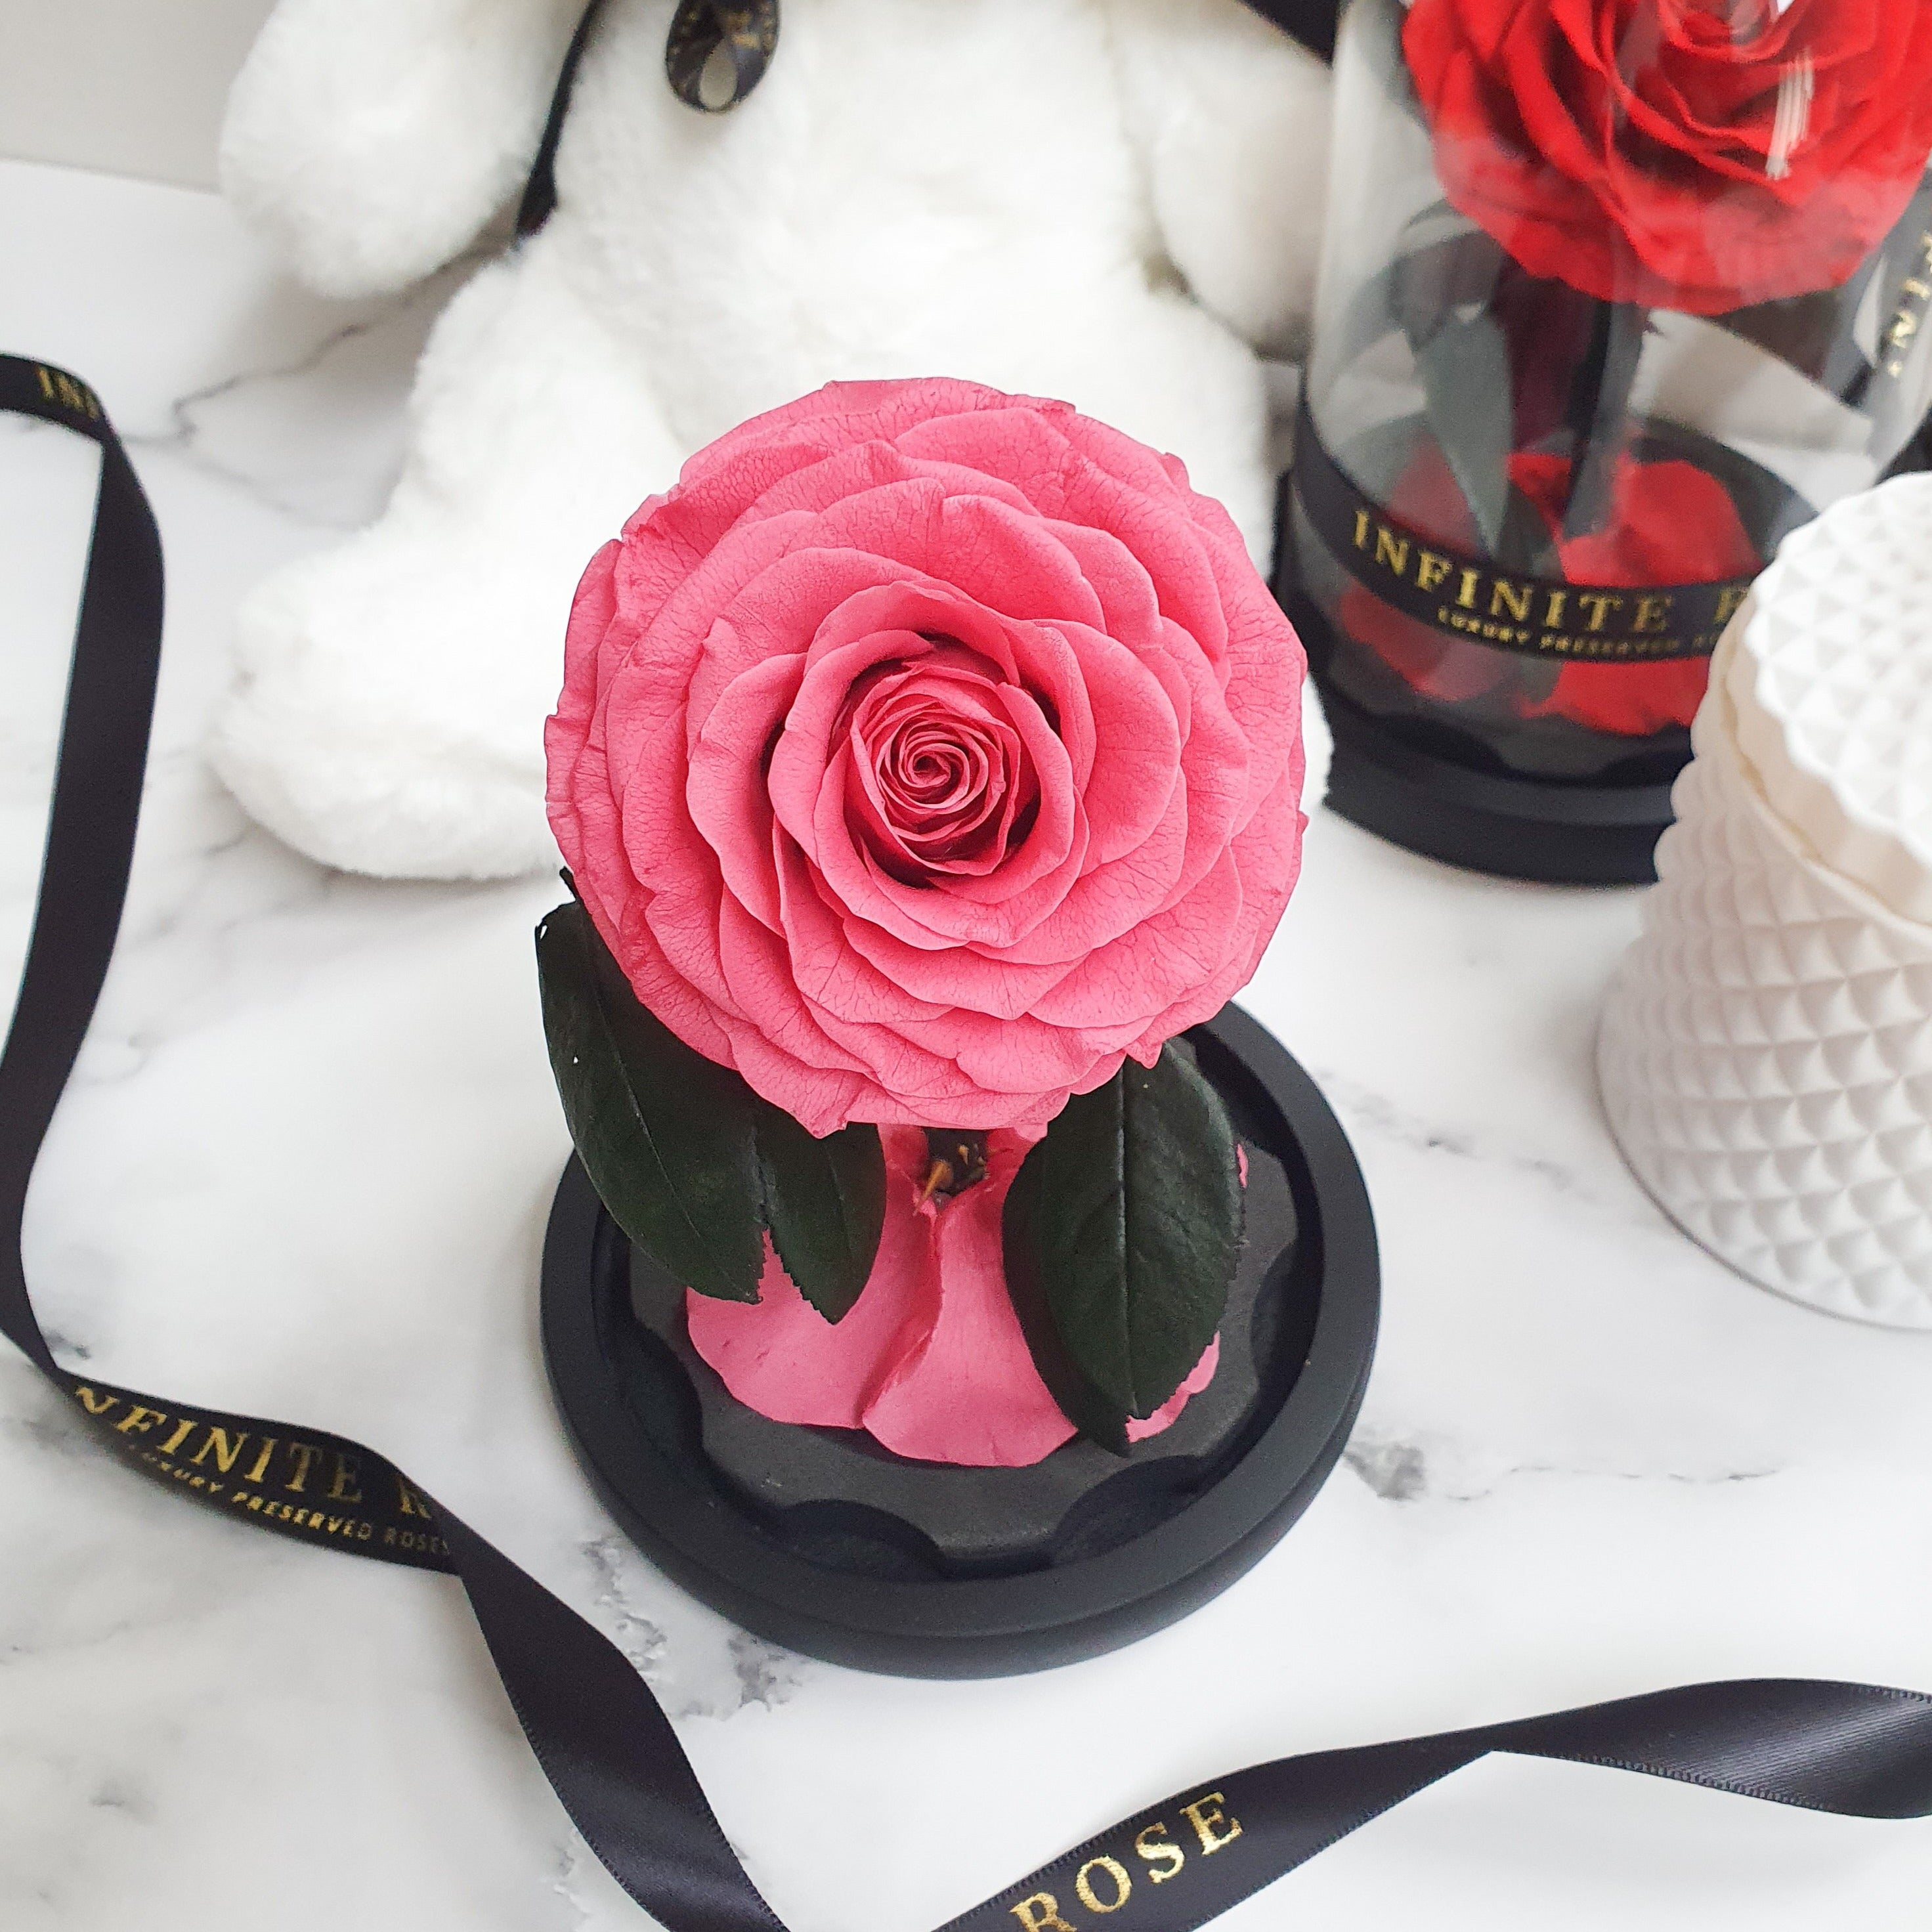 Infinite Rose | Petite Rose Dome in Pink | Real Roses That Last A Year